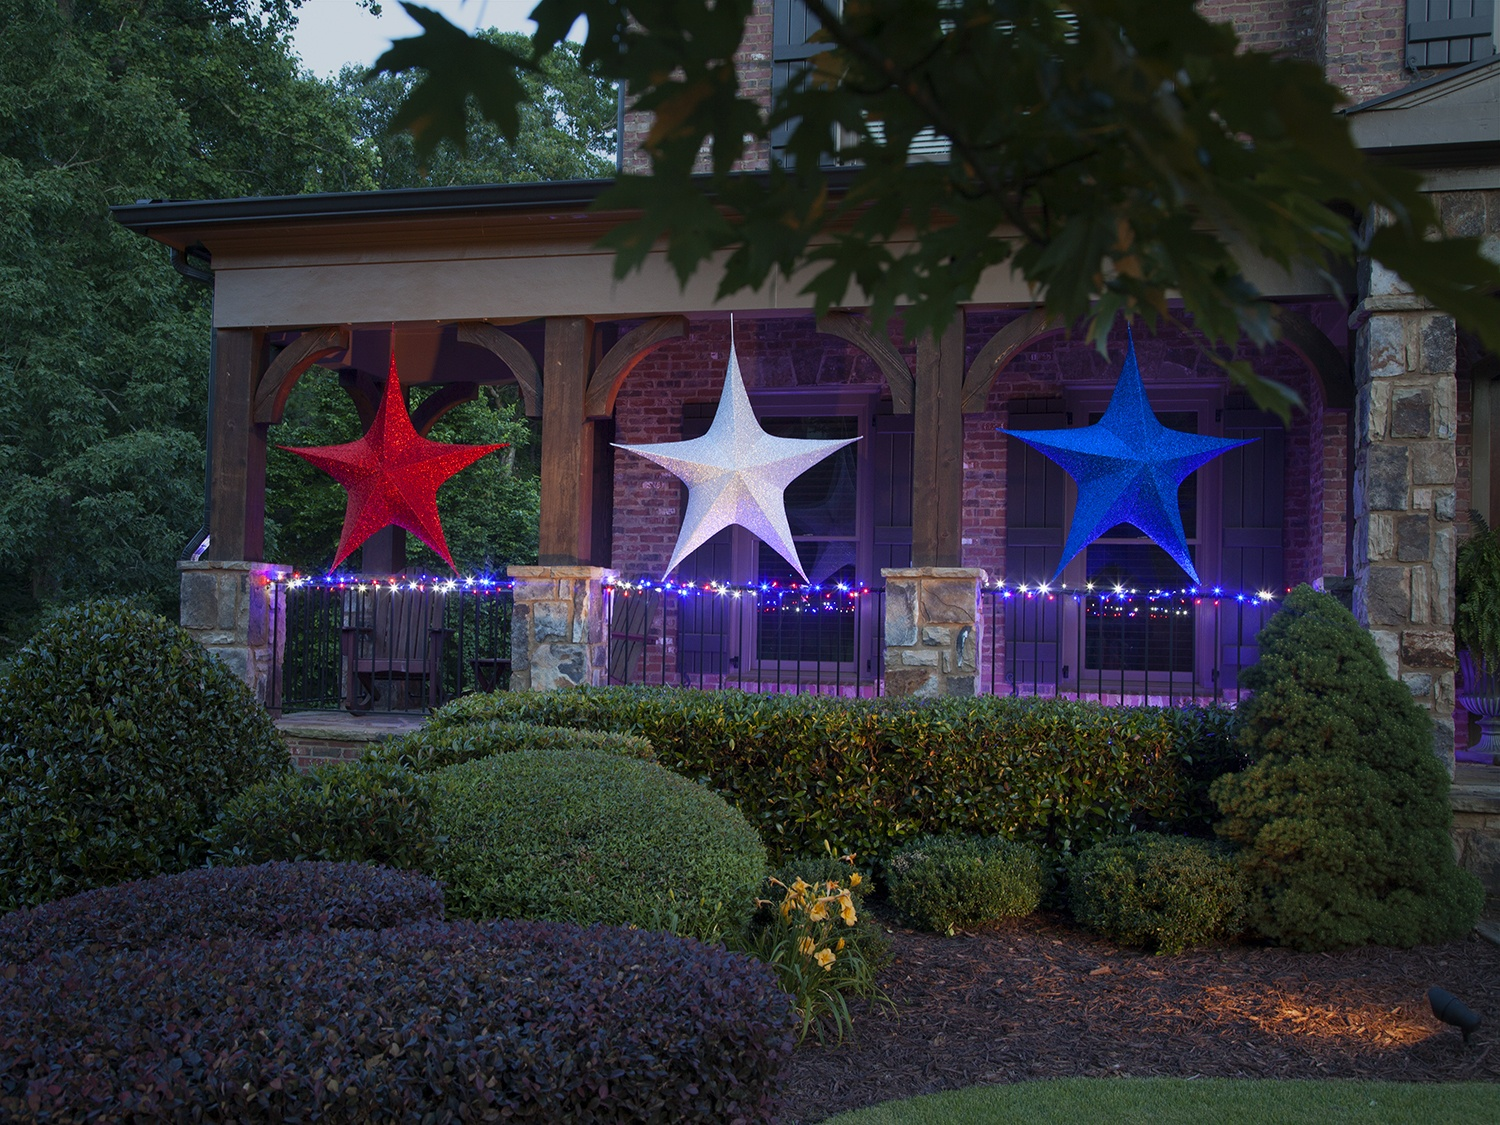 Patriotic Christmas Lights.Patriotic Lights And Decorations